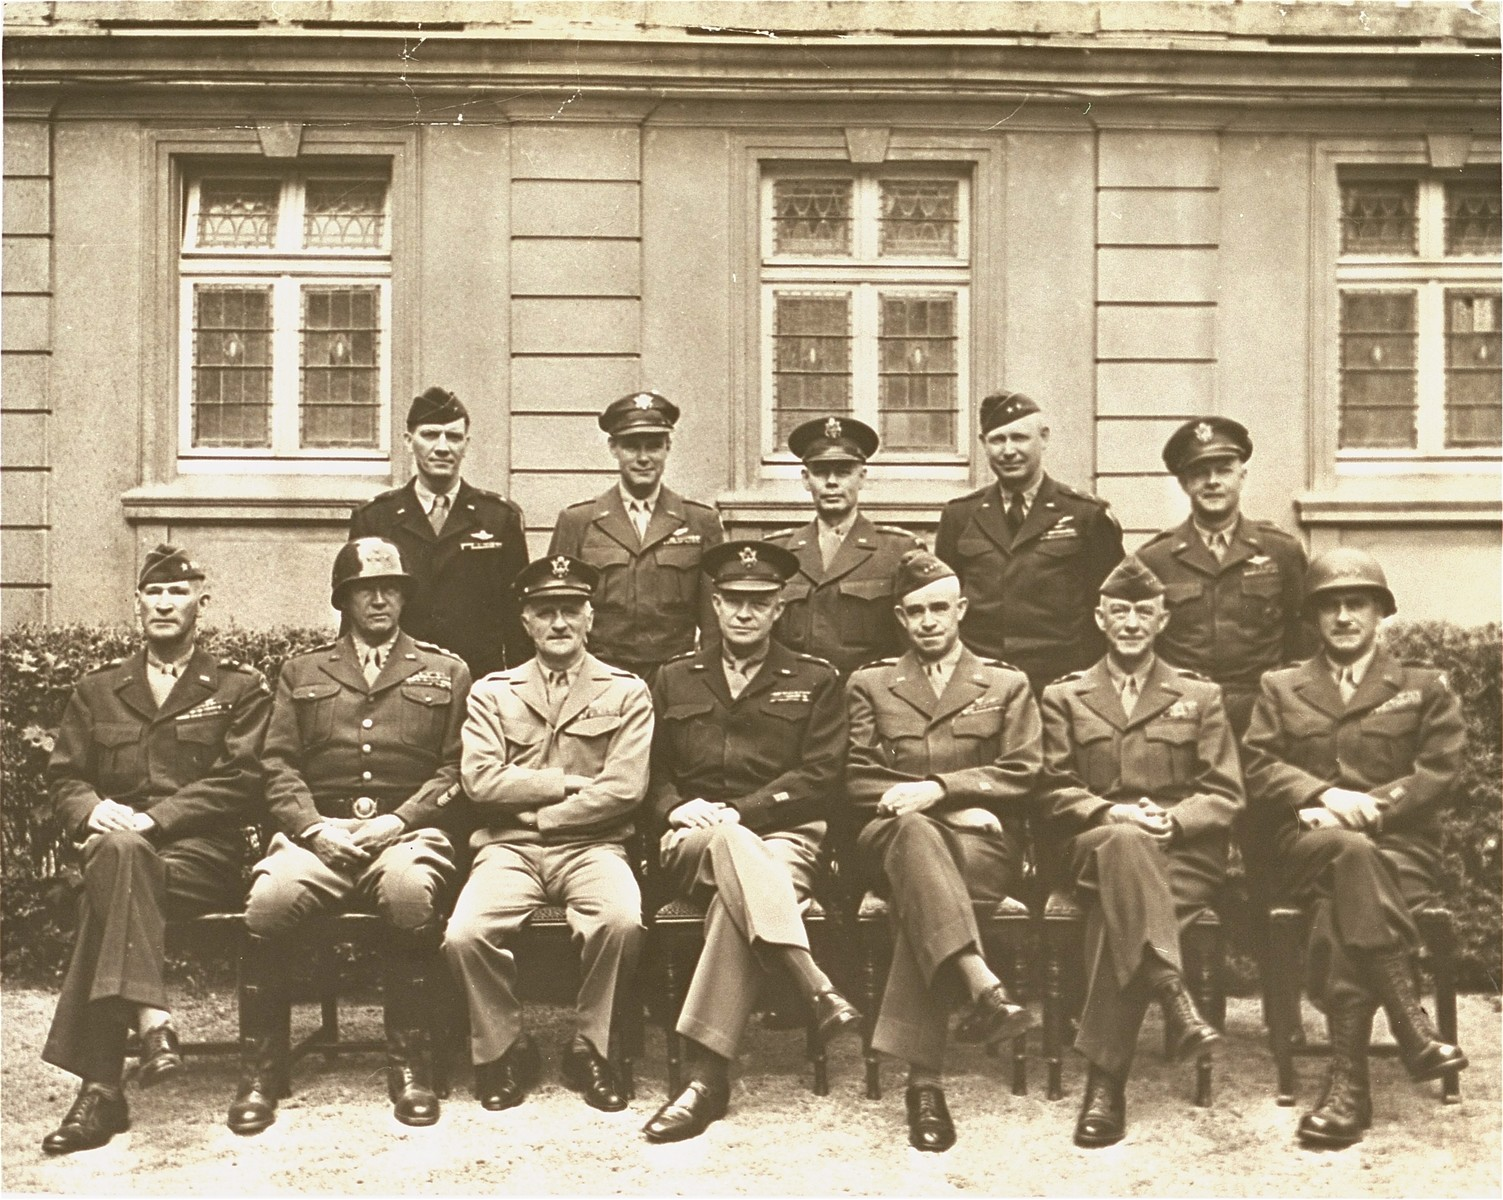 American generals who helped pave the way to victory are photographed during a victory meeting at Gen. Omar N. Bradley's 12th Army group headquarters.   Seated left to right: Lt. Gen. Wm. H. Simpson, Gen. George Patton, Jr., Gen. Carl A. Spaatz, Gen. Dwight D. Eisenhower, Gen. Omar N. Bradley, Gen. Courtney H. Hodges, Lt. Gen. Leonard T. Gerow. Standing left to right: Brig. Gen. Ralph F. Stearley, Lt. Gen. Walter B. Smith, Maj. Gen. Otto P. Weyland, Brig. Gen. Richard E. Nugent.